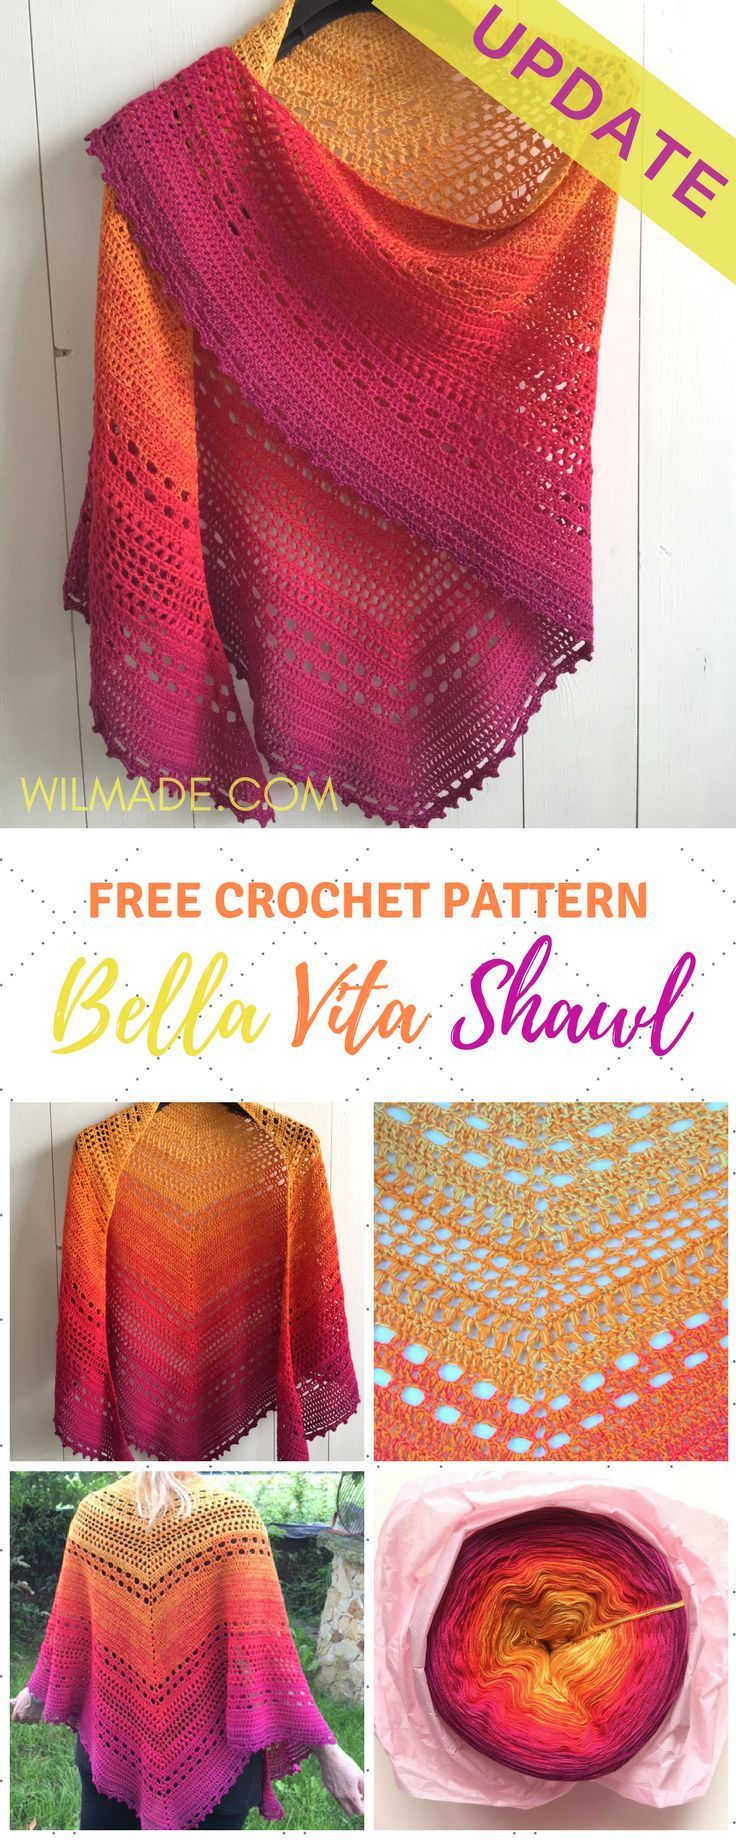 Free #crochet pattern of the bella vita #shawl has been updated! It's now easier to understand.